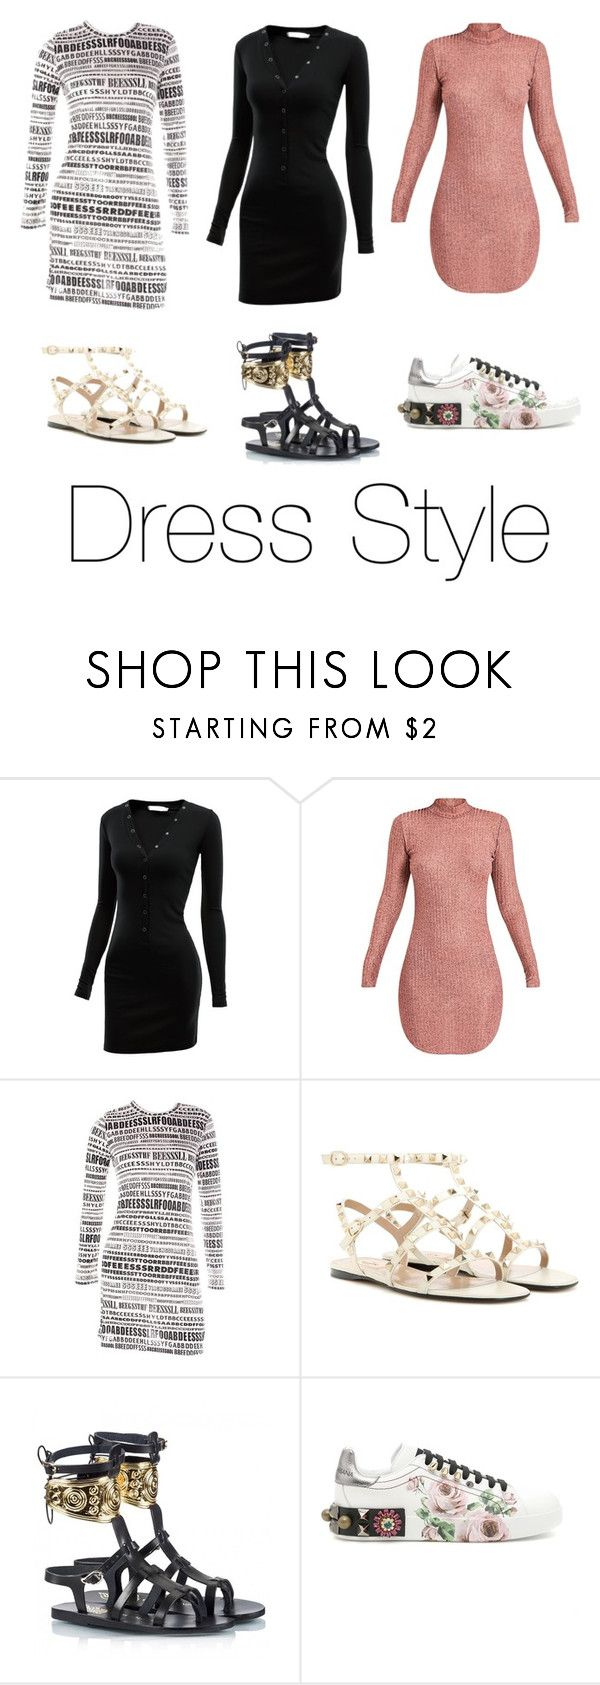 """Dress Style - casual & chic"" by lucia-grigore ❤ liked on Polyvore featuring Doublju, Comme des Garçons, Valentino, Ancient Greek Sandals, Dolce&Gabbana, redcarpetstyle and OscarsThrowback"